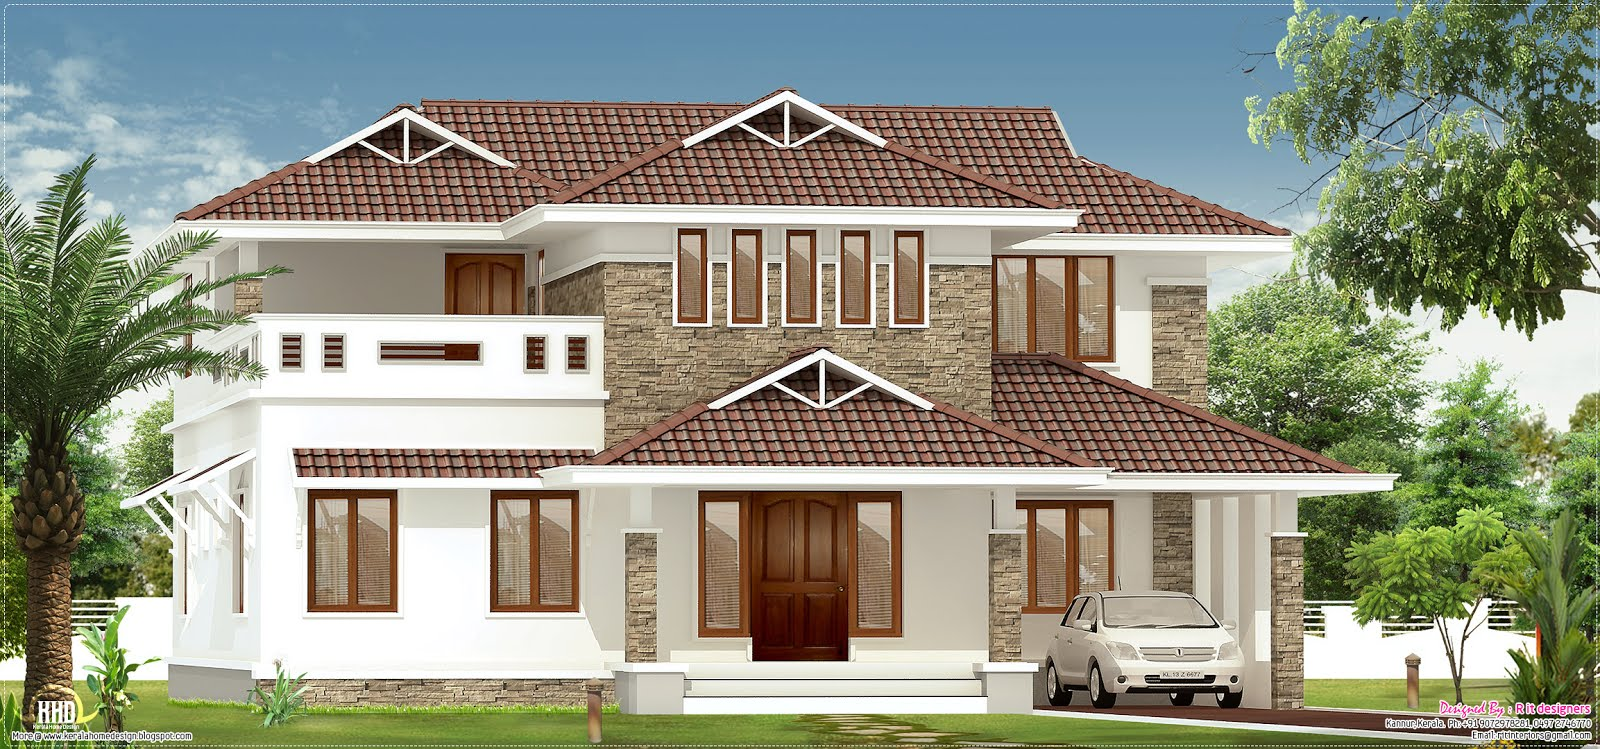 Home villas front elevation n design images omahdesigns net for Kerala style villa plans